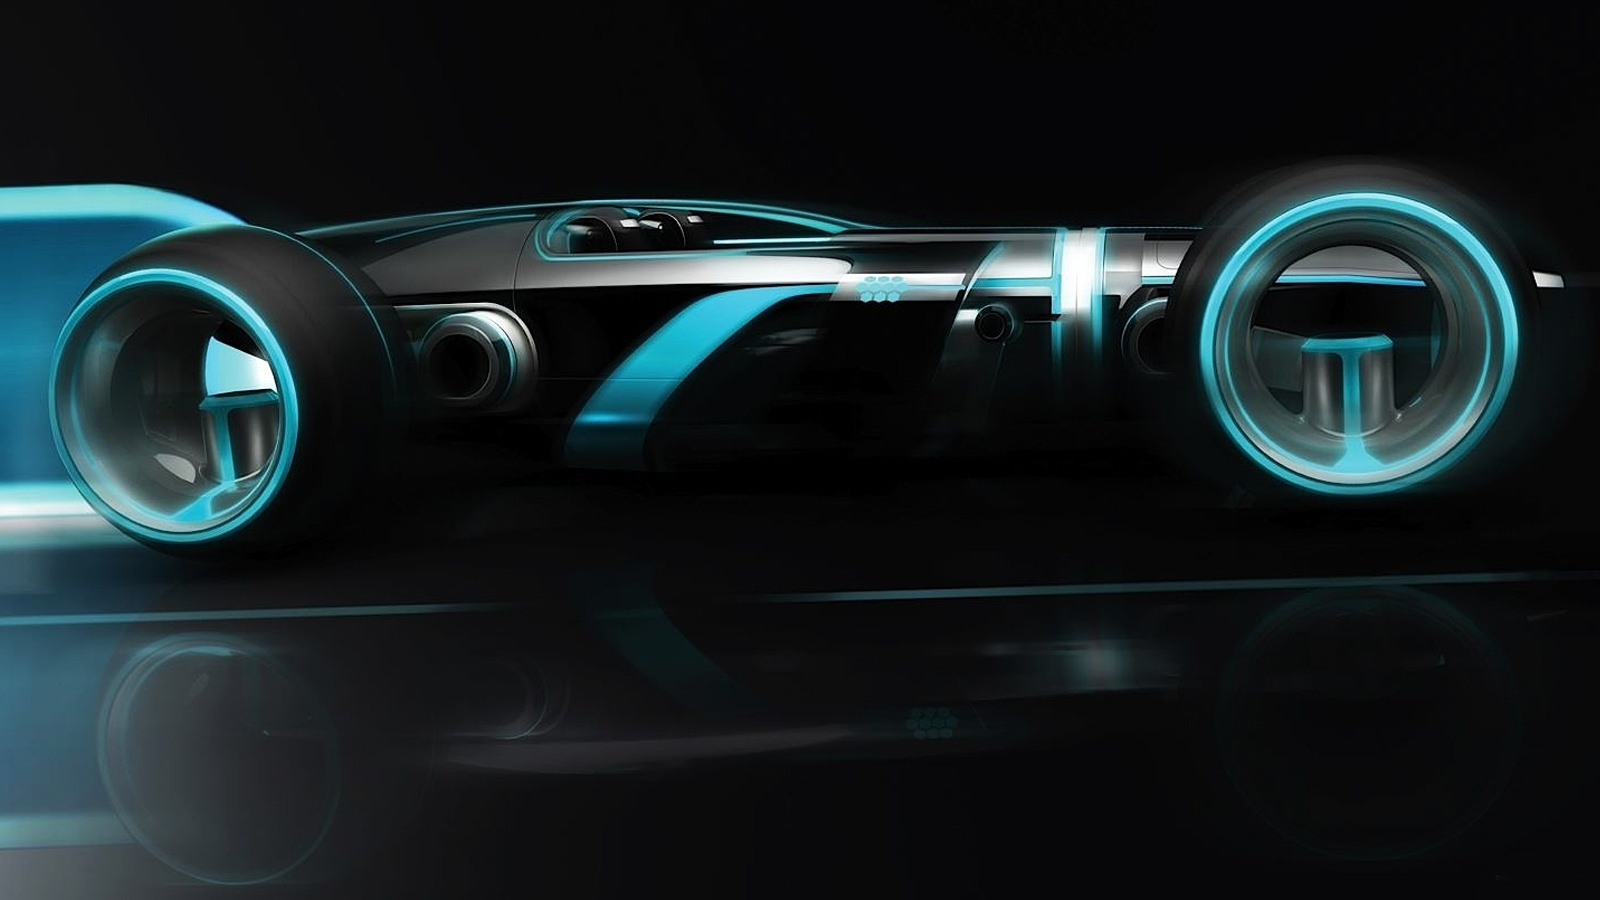 Download Tron Wallpaper 1600x900 Wallpoper 381269 1600x900